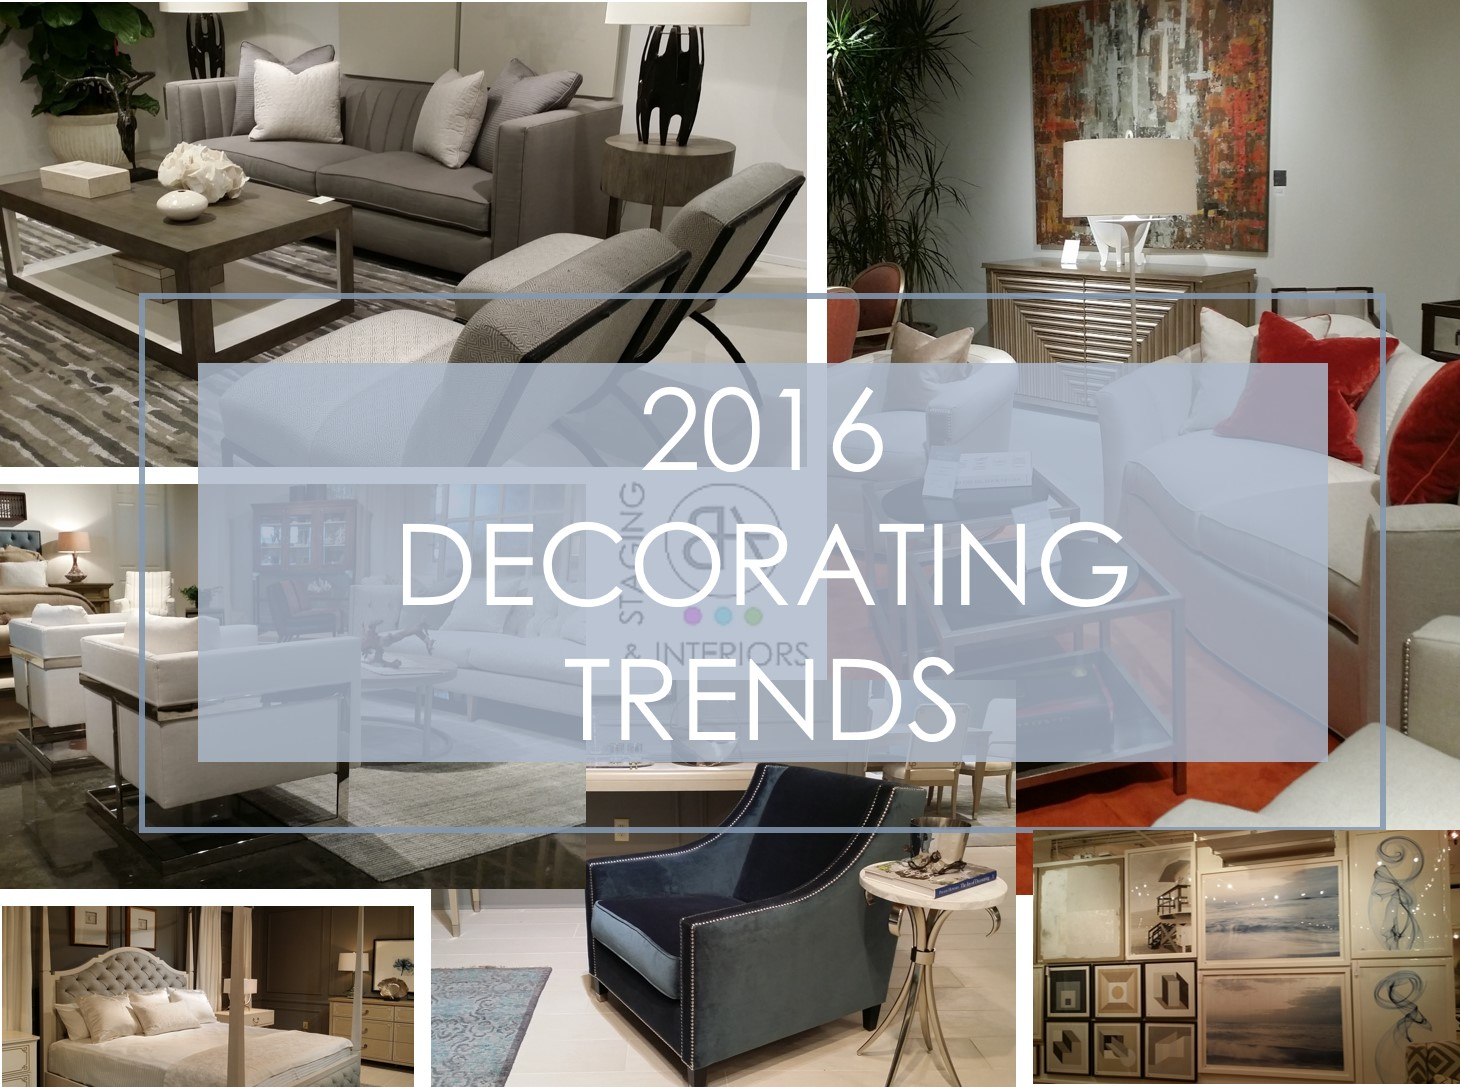 Design Trends 2016 Are White Furniture And Grays Making Their Way Out